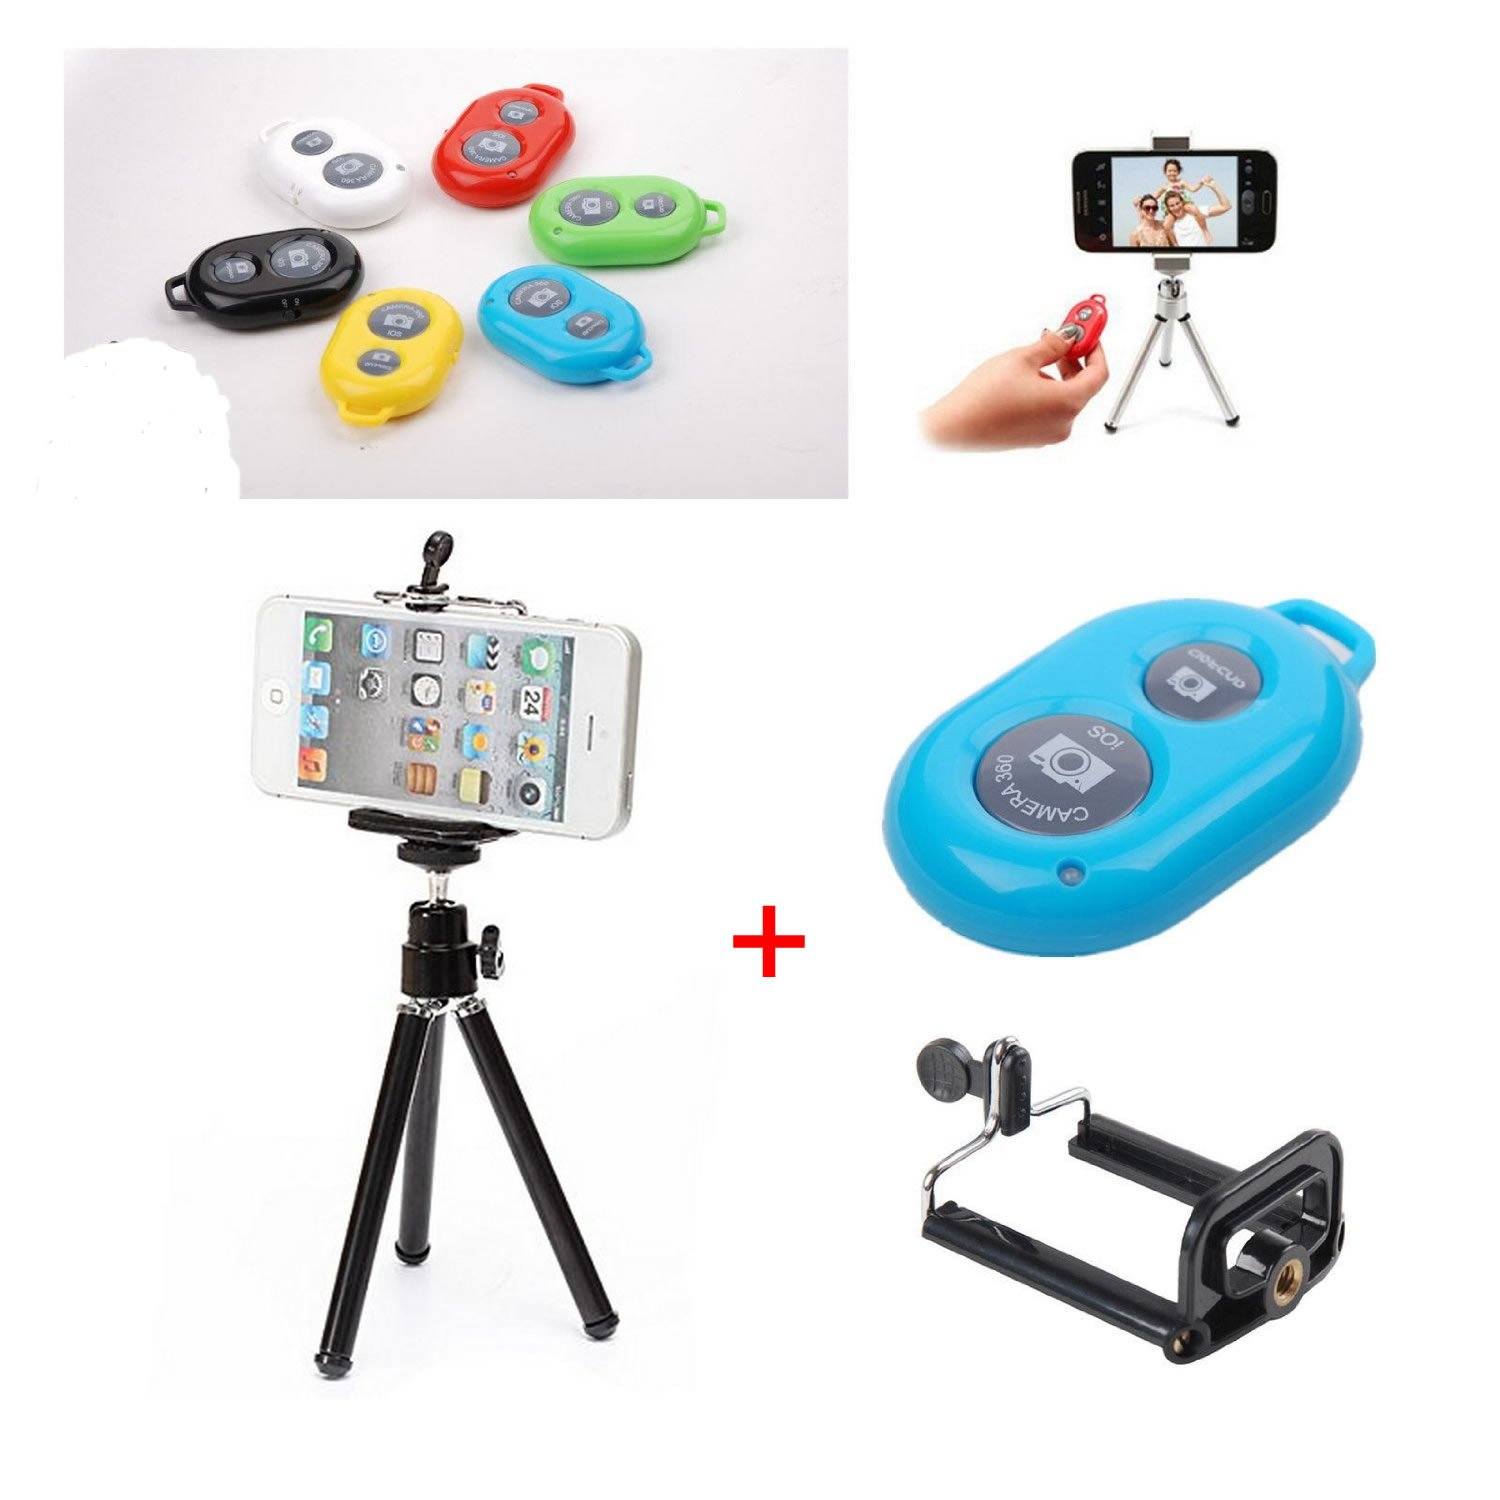 Shopping_Shop2000 Photo Shooting Kit for iPhone 5 5C 5S 4S Samsung Galaxy S5 S4 S3 Note 3 2 HTC One LG Sony Android Cell Phone, Retractable Universal Mini Tripod Stand Camera Video Holder Mount + Universal Adapter Holder for iPhone & Large Size Cell Phone